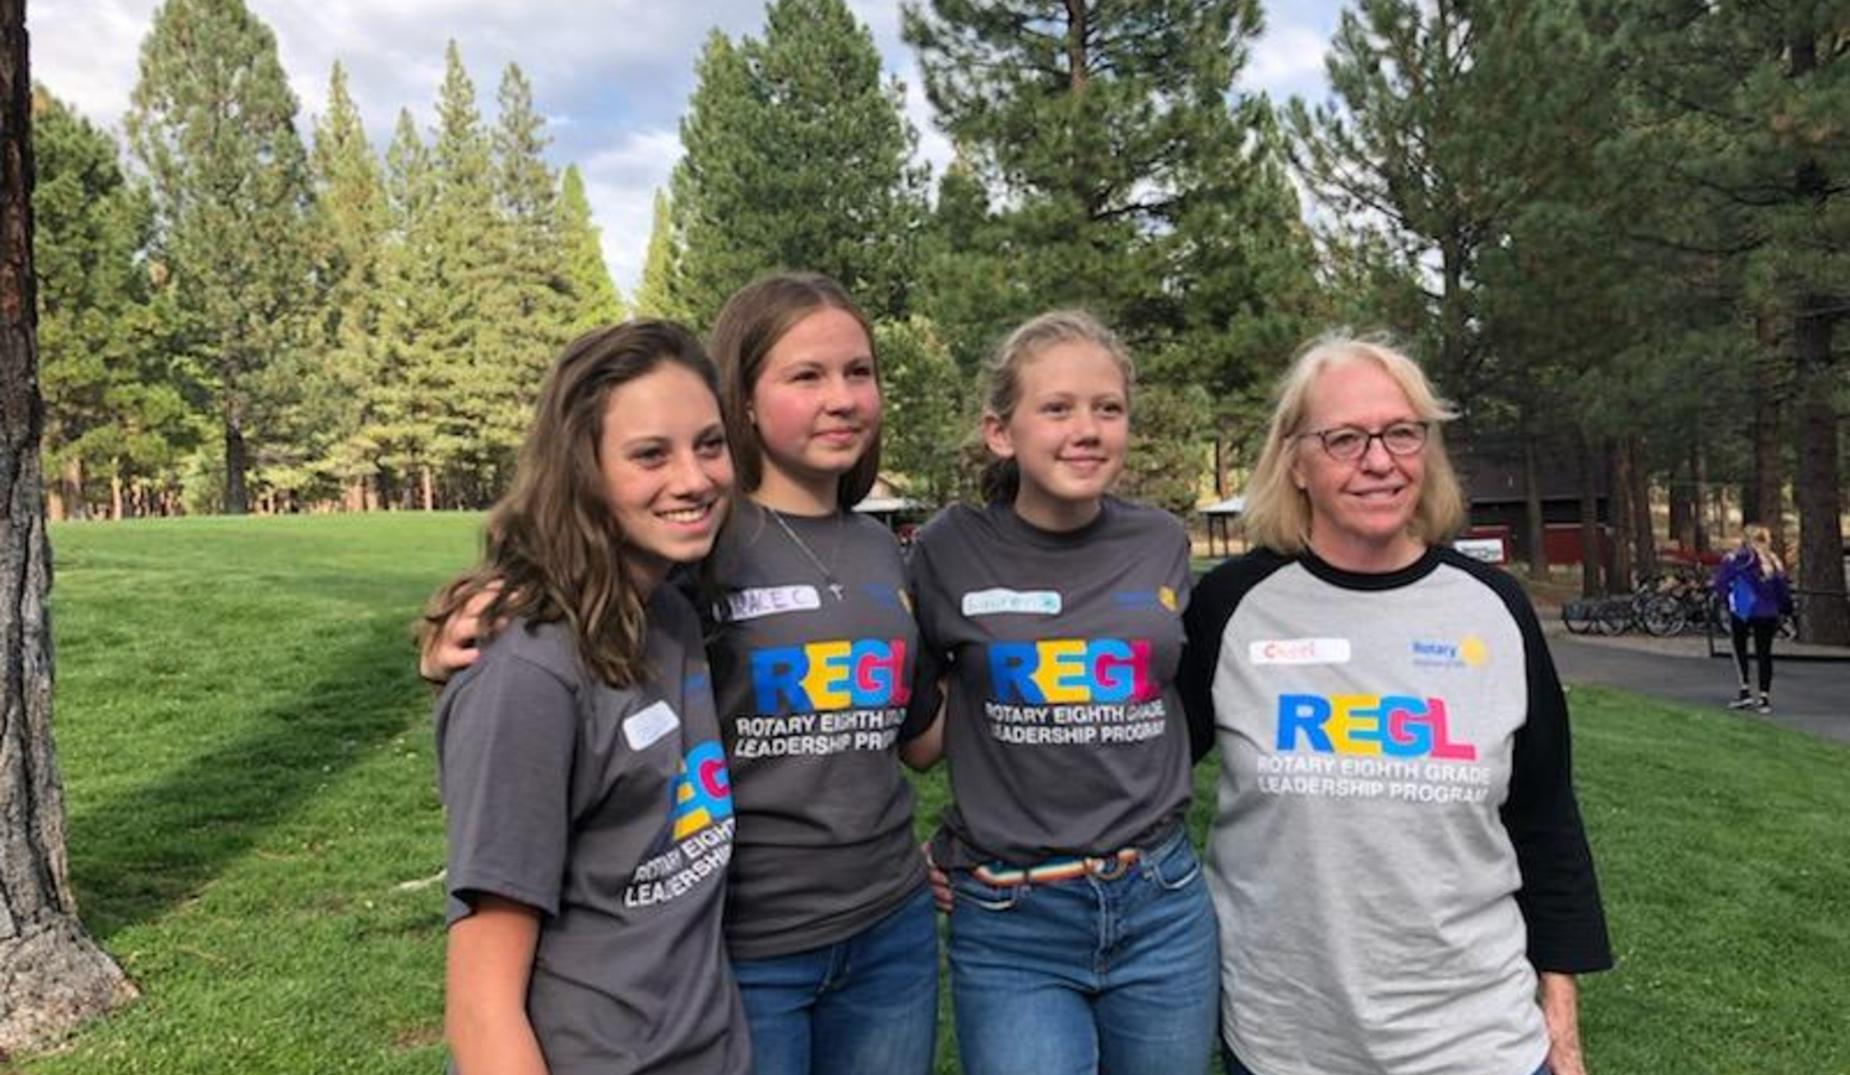 8th grade Rotary REGL Camp